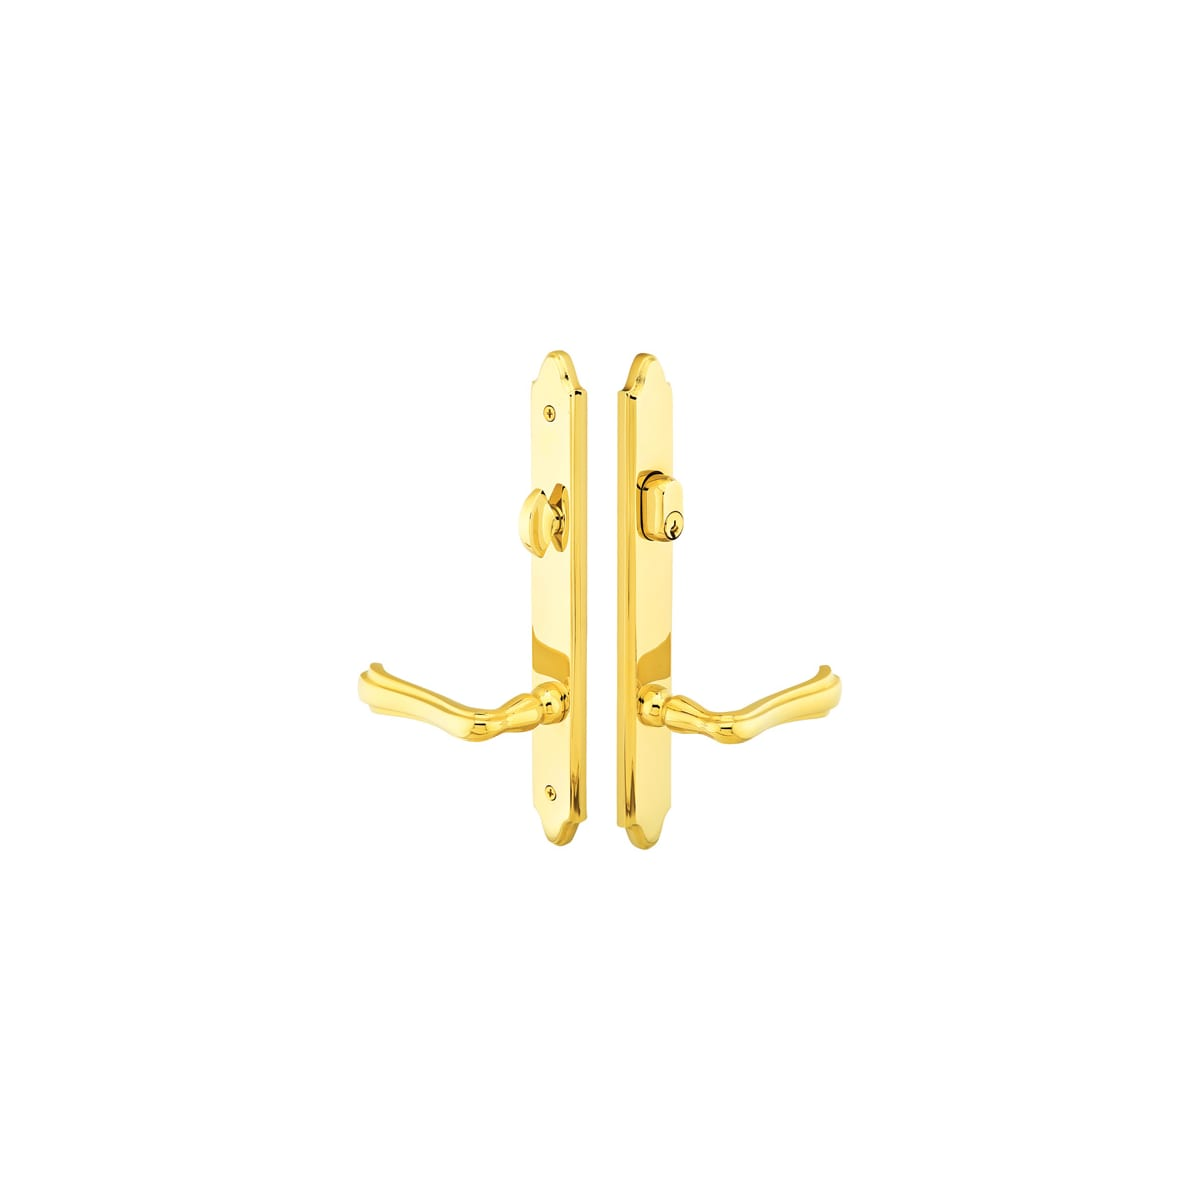 Emtek Classic Brass Door Configuration 3 Keyed Entry Multi Point Narrow Trim Lever Set with American Cylinder Above Handle